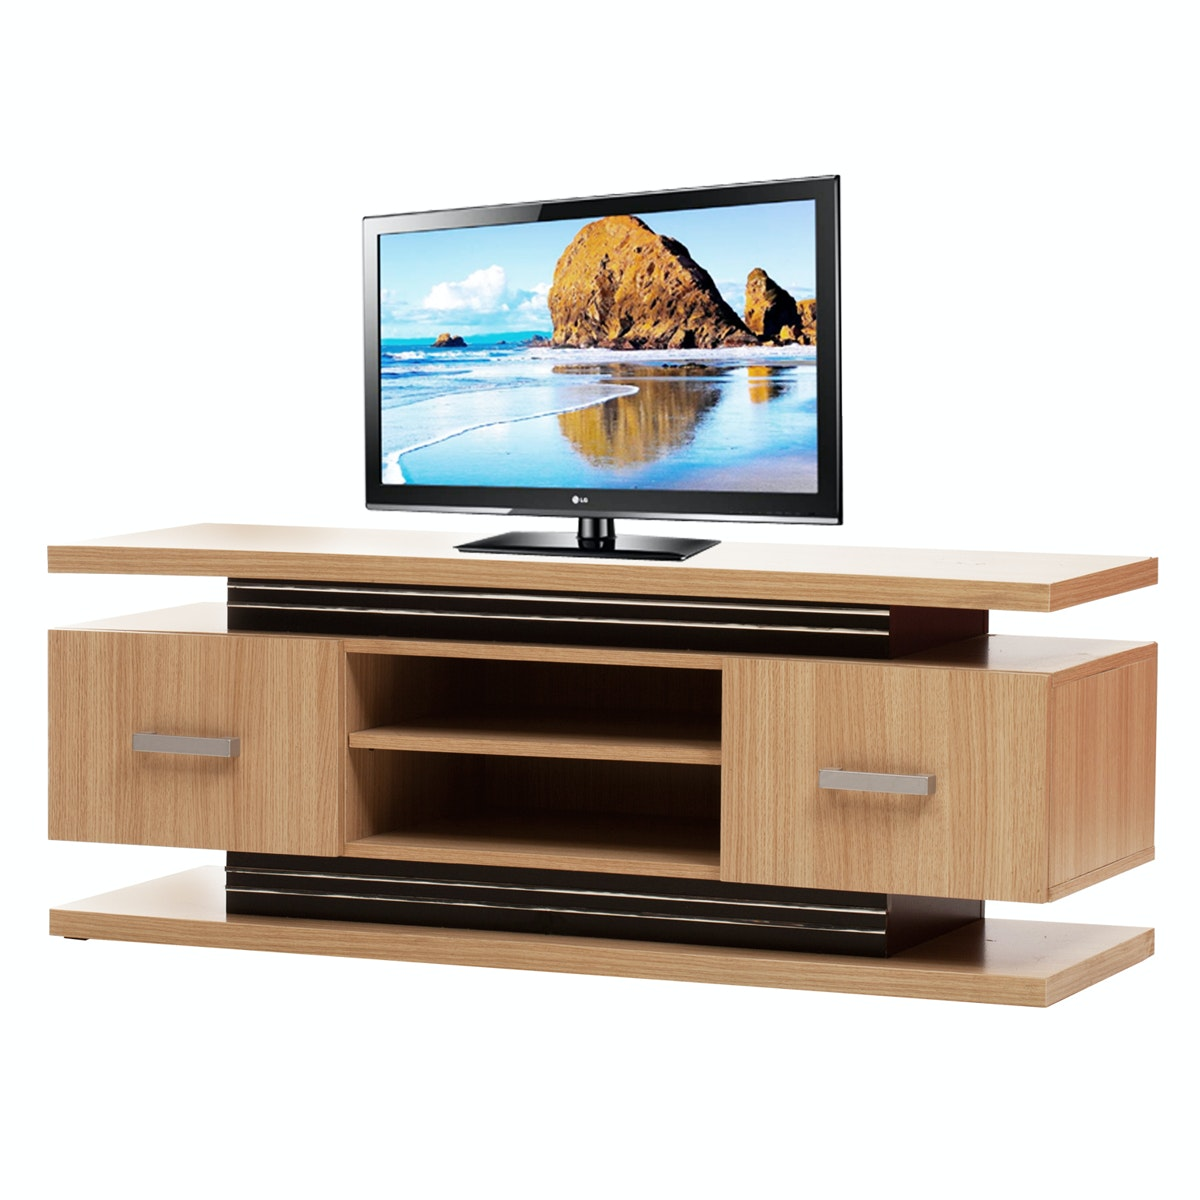 Felini Furniture Rak TV AVR 120 Oak